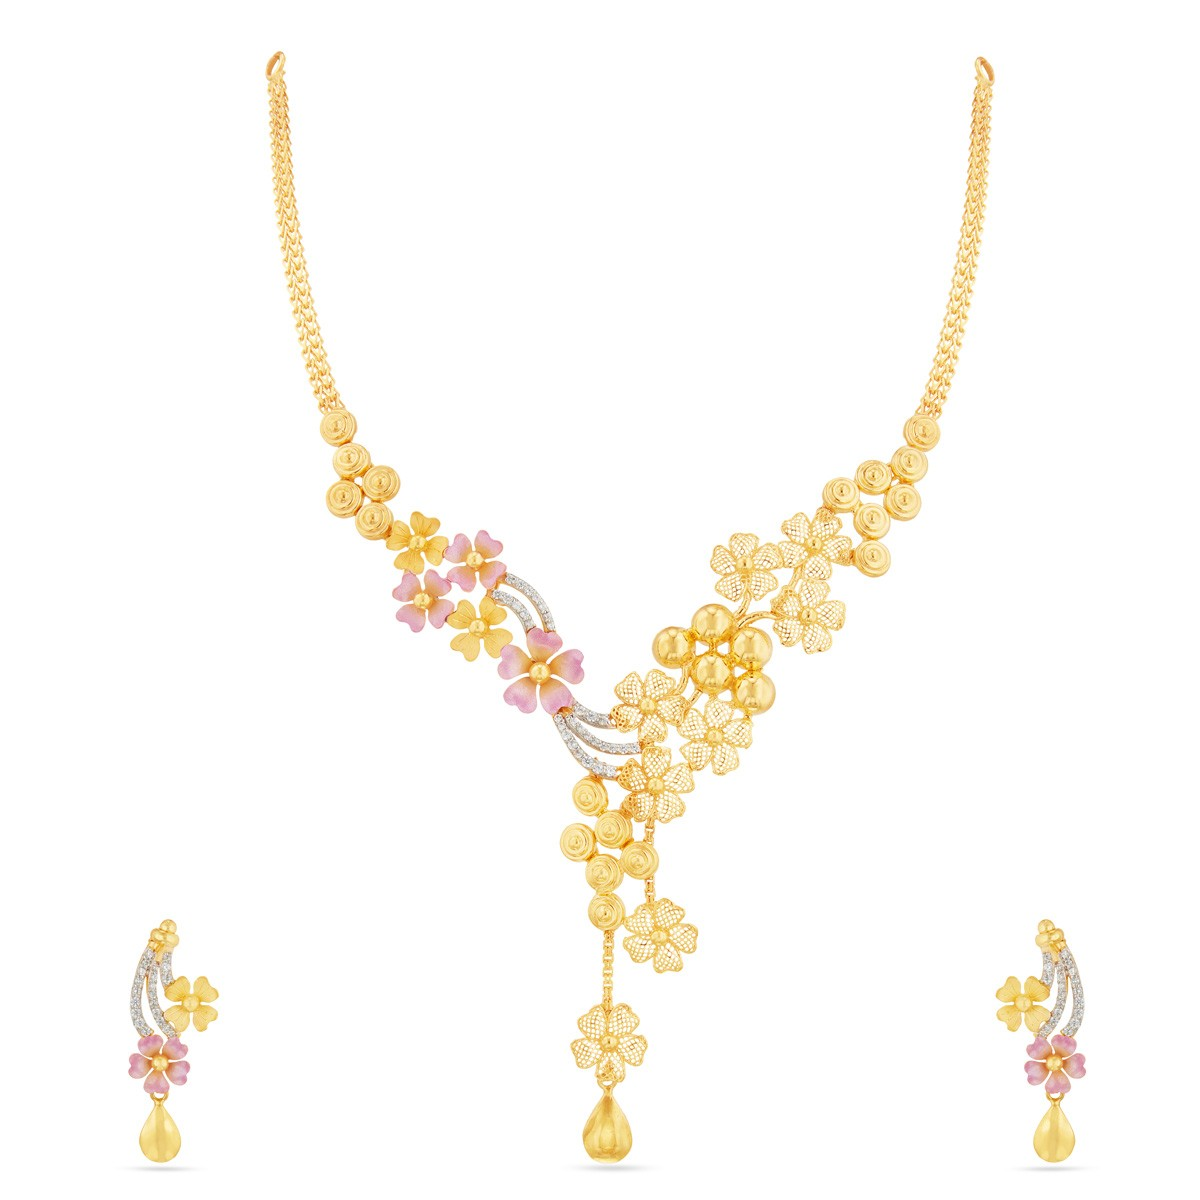 necklaces retailers manufacturers gold necklace weight surat shop wholesalers in jewelry light chain and distributors chains